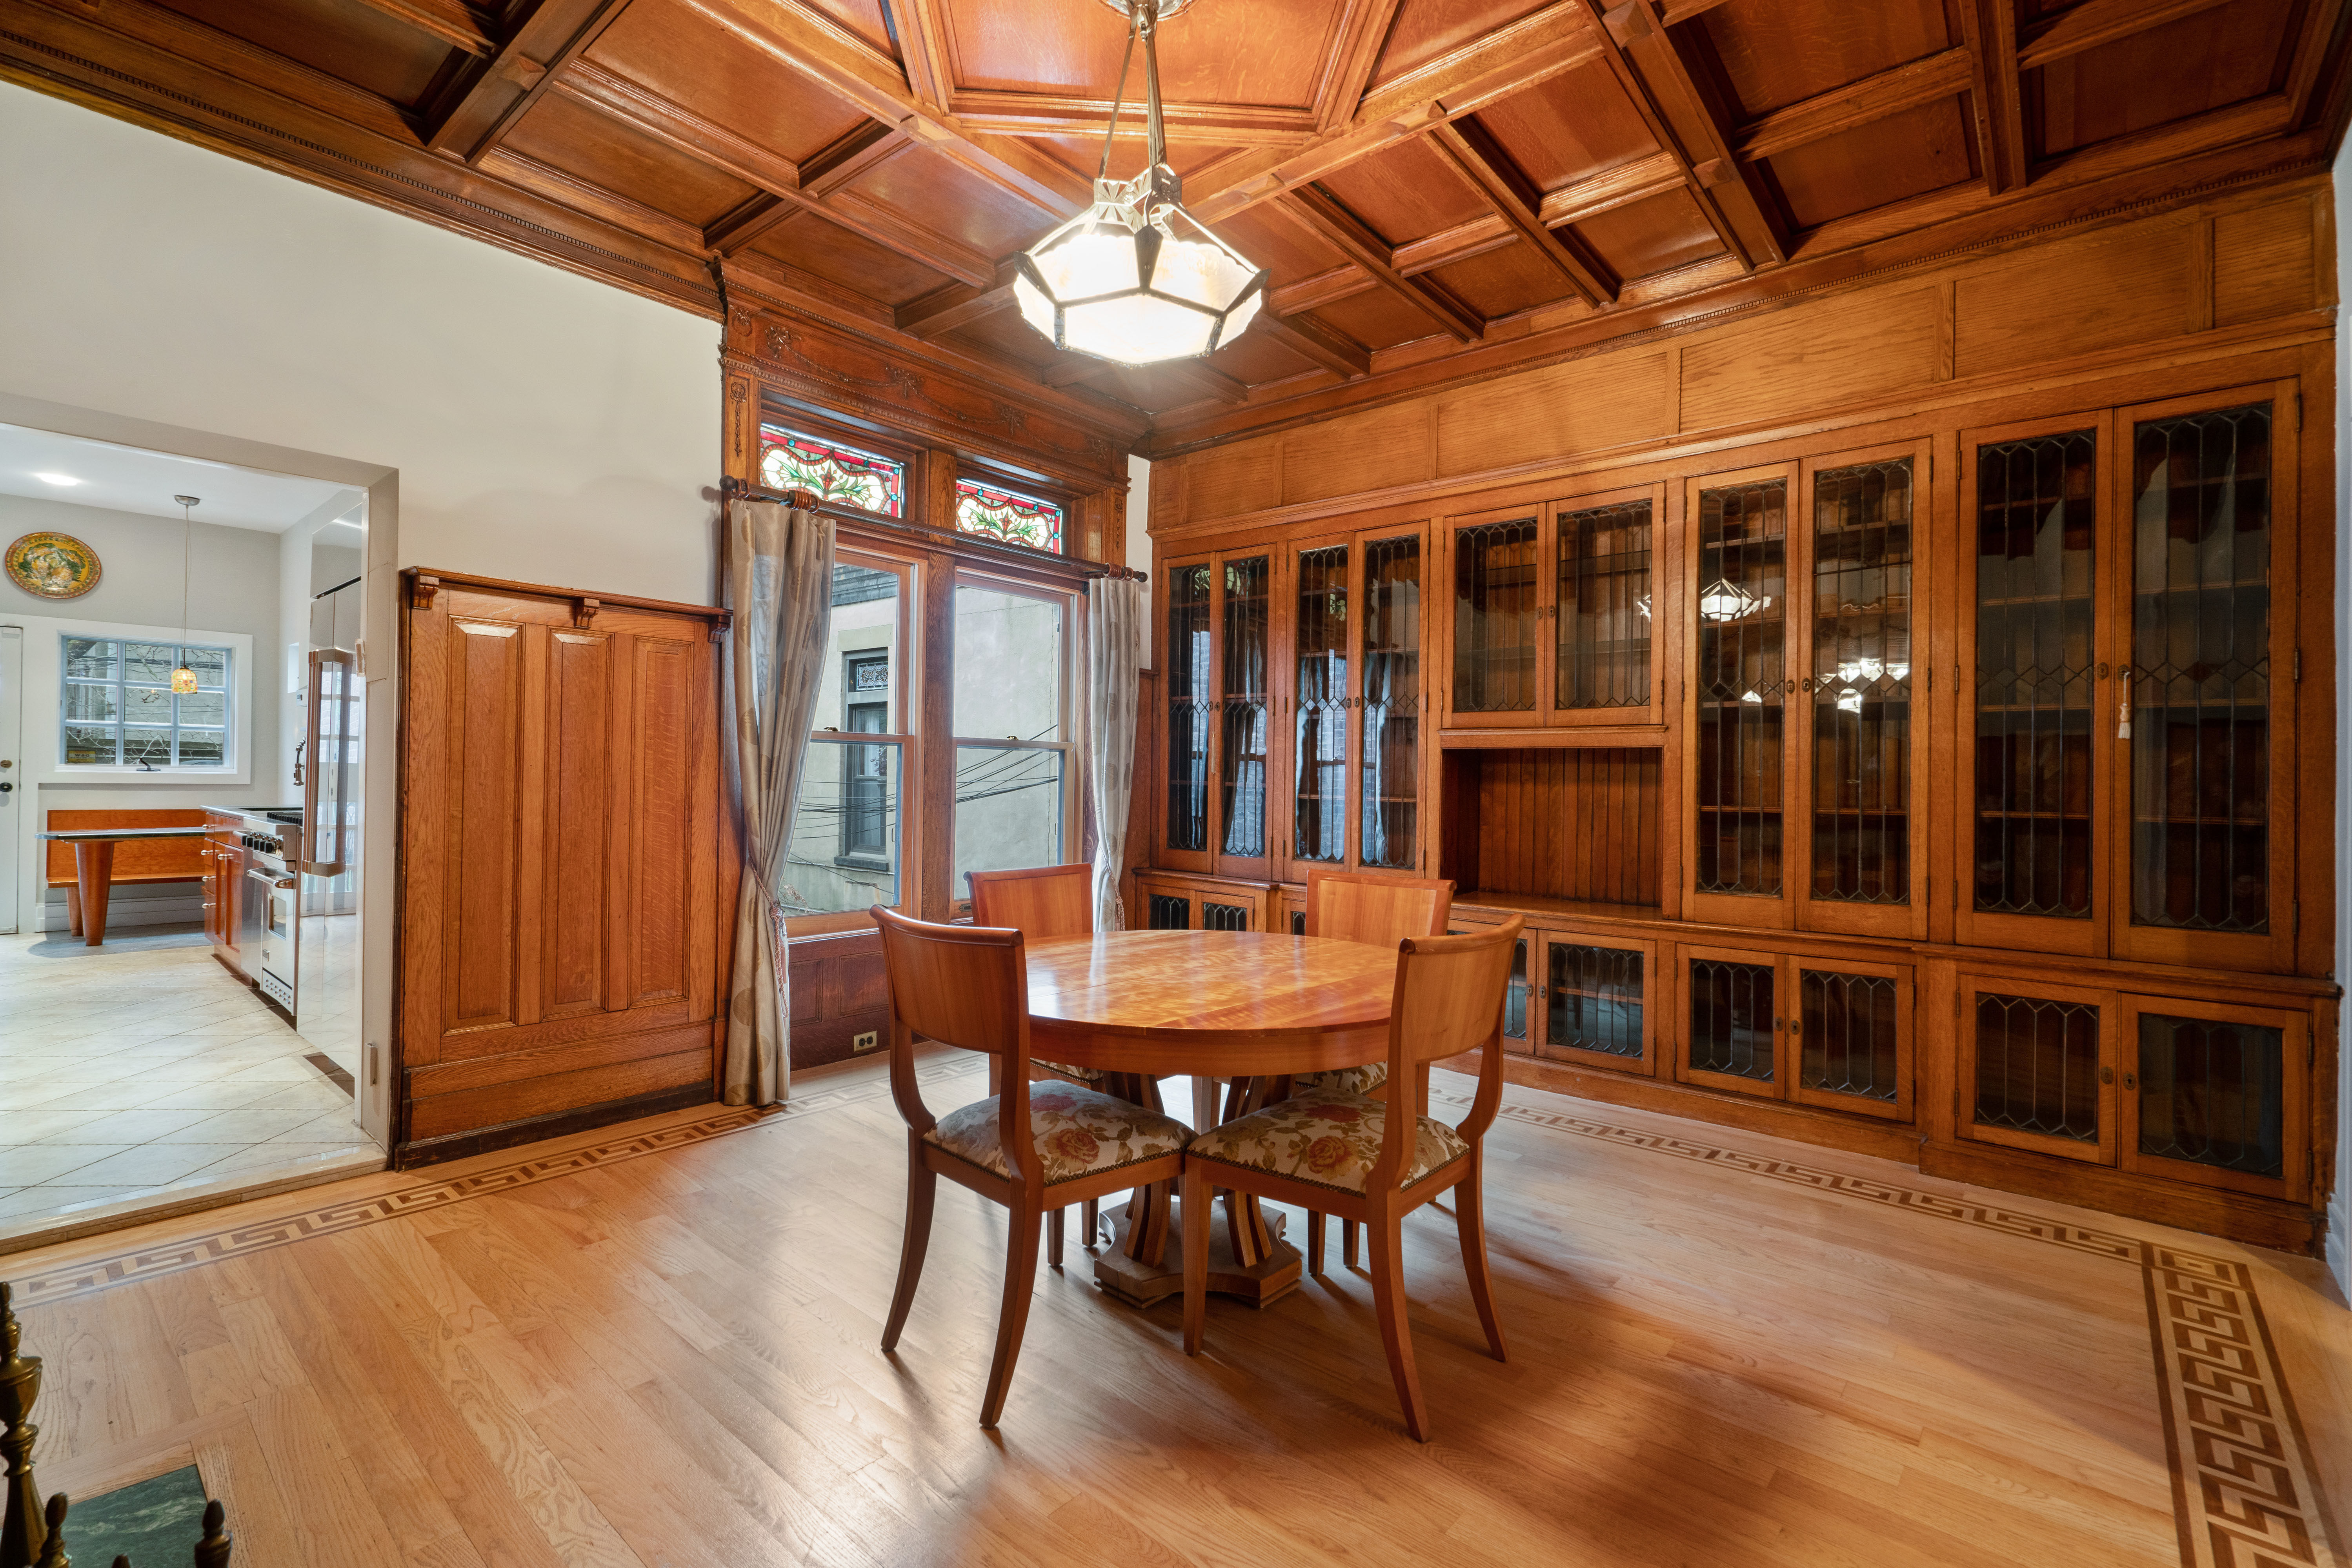 594 2nd St Photo 6 - BROWNSTONER-LISTING-47512a55ccfbbeb19b0a8fb315f62163